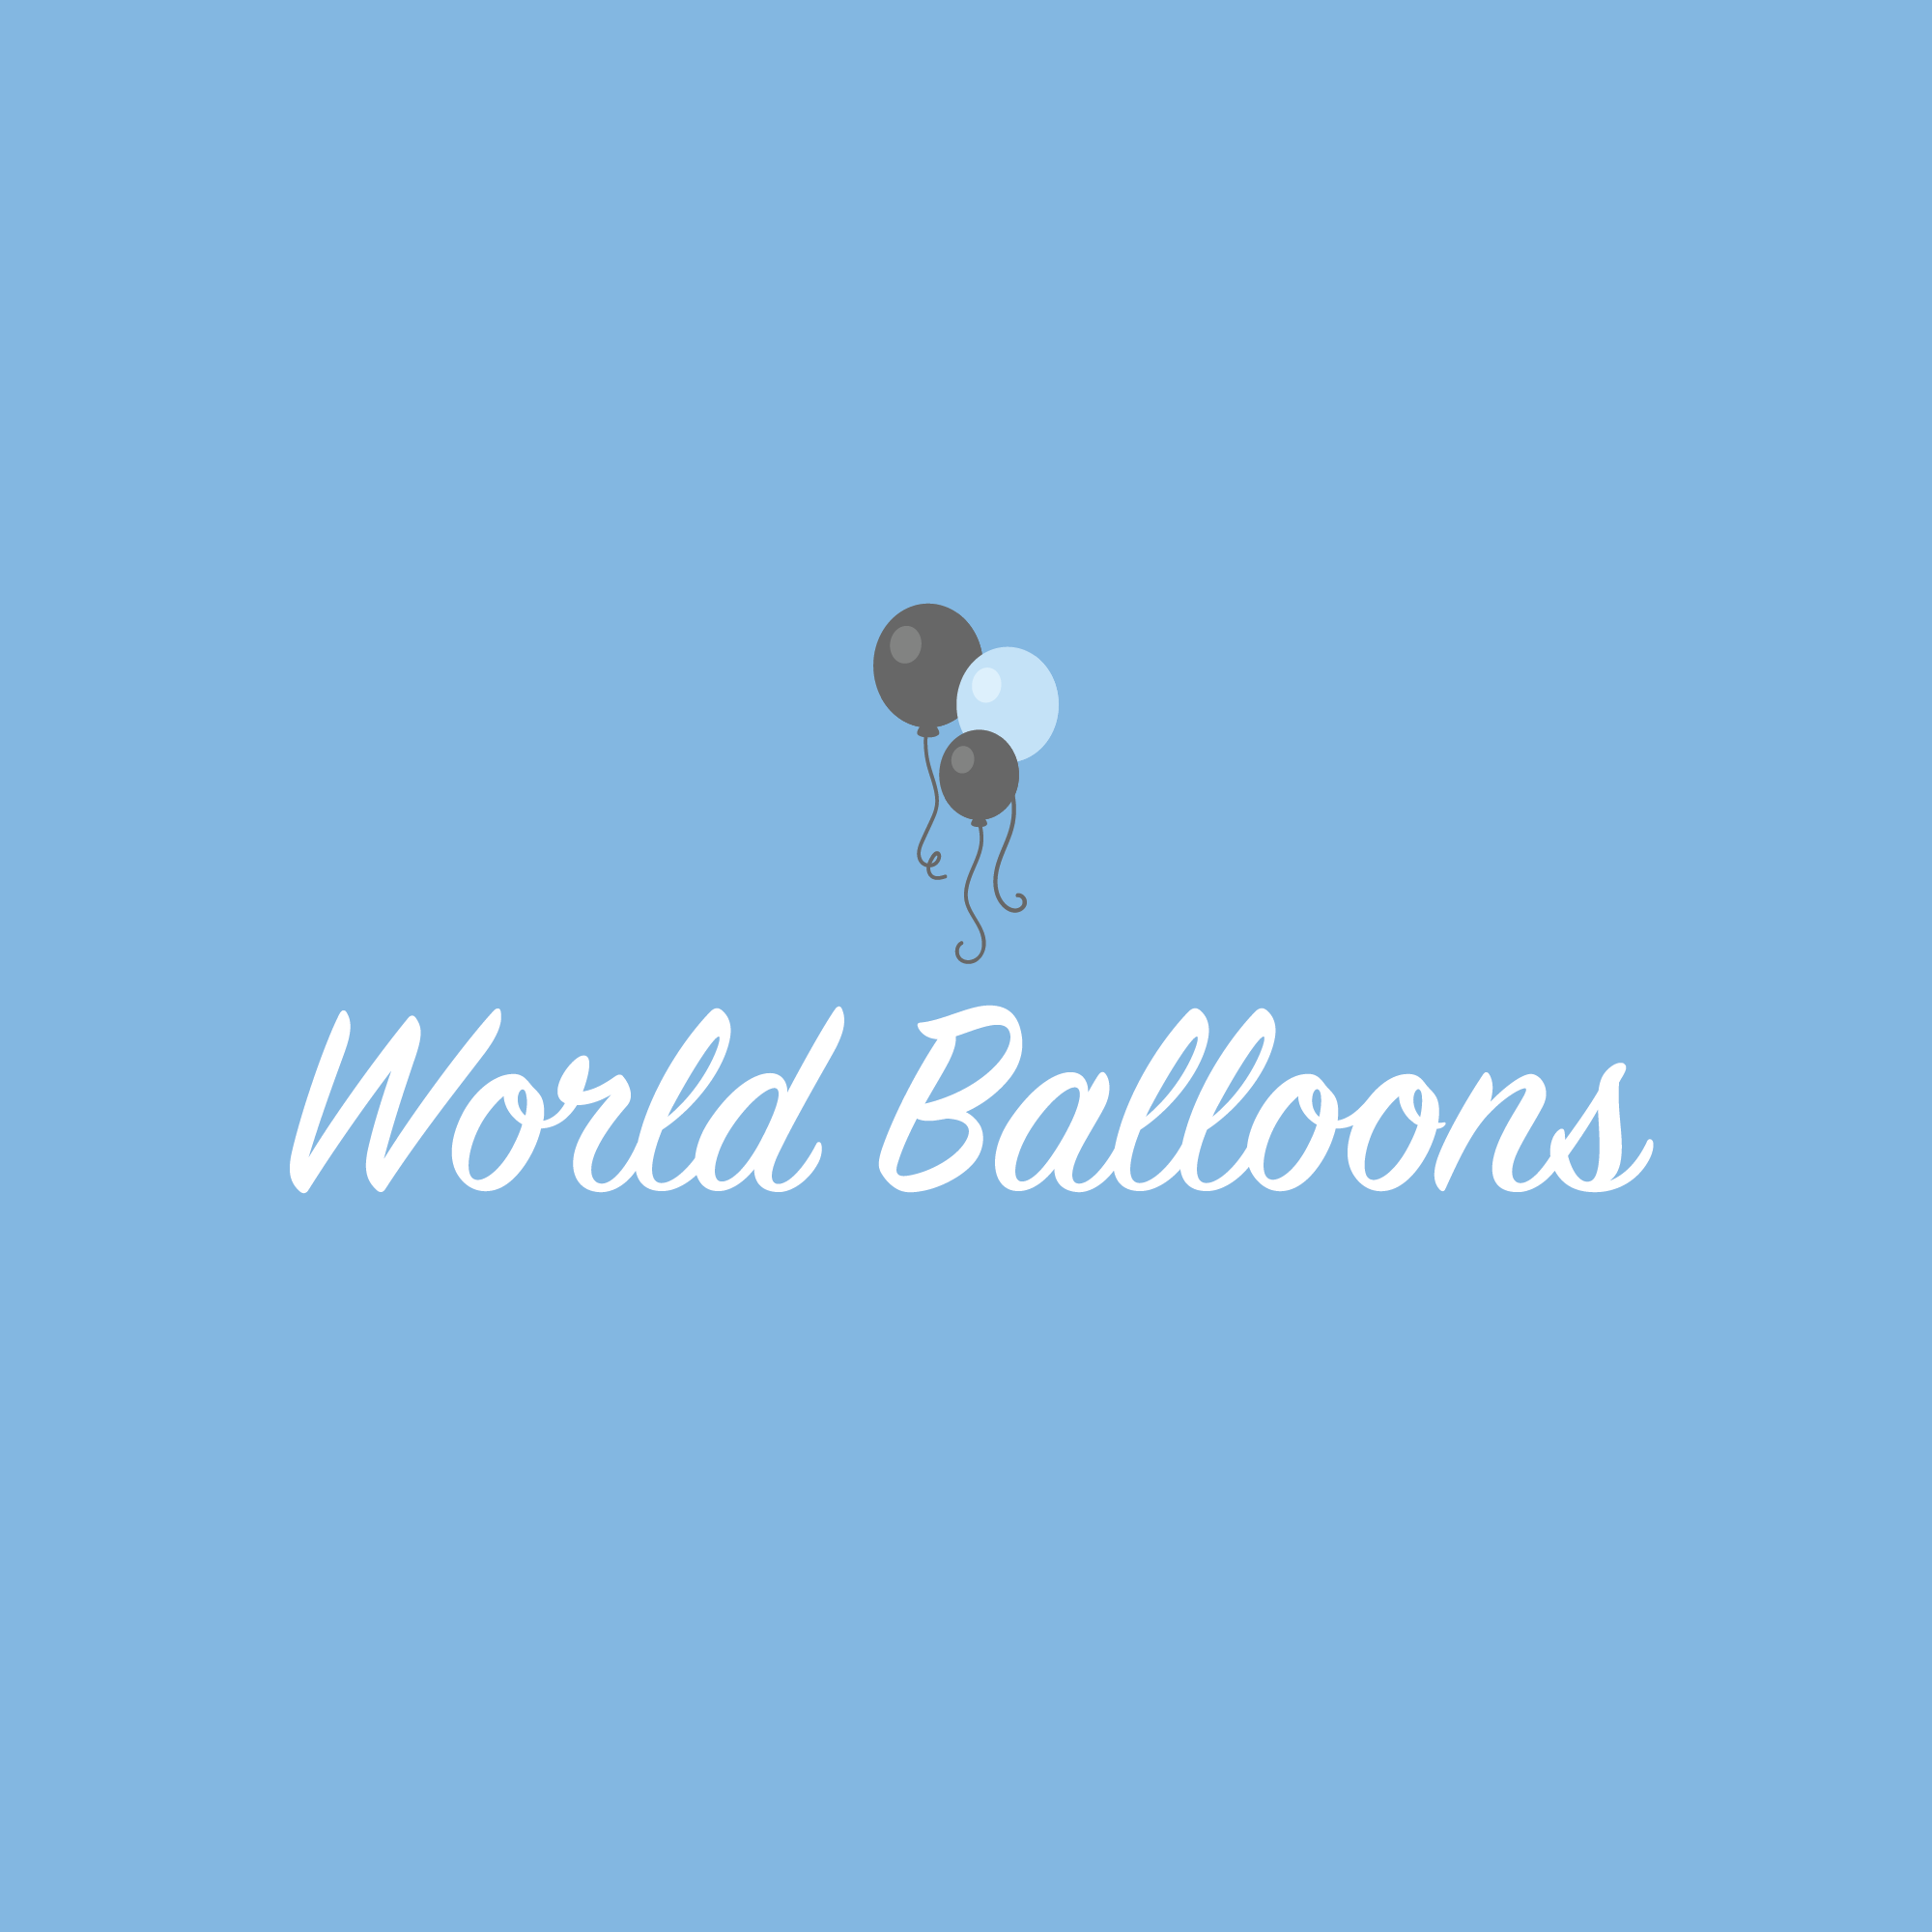 Instagram Story Cover - World Balloons Image